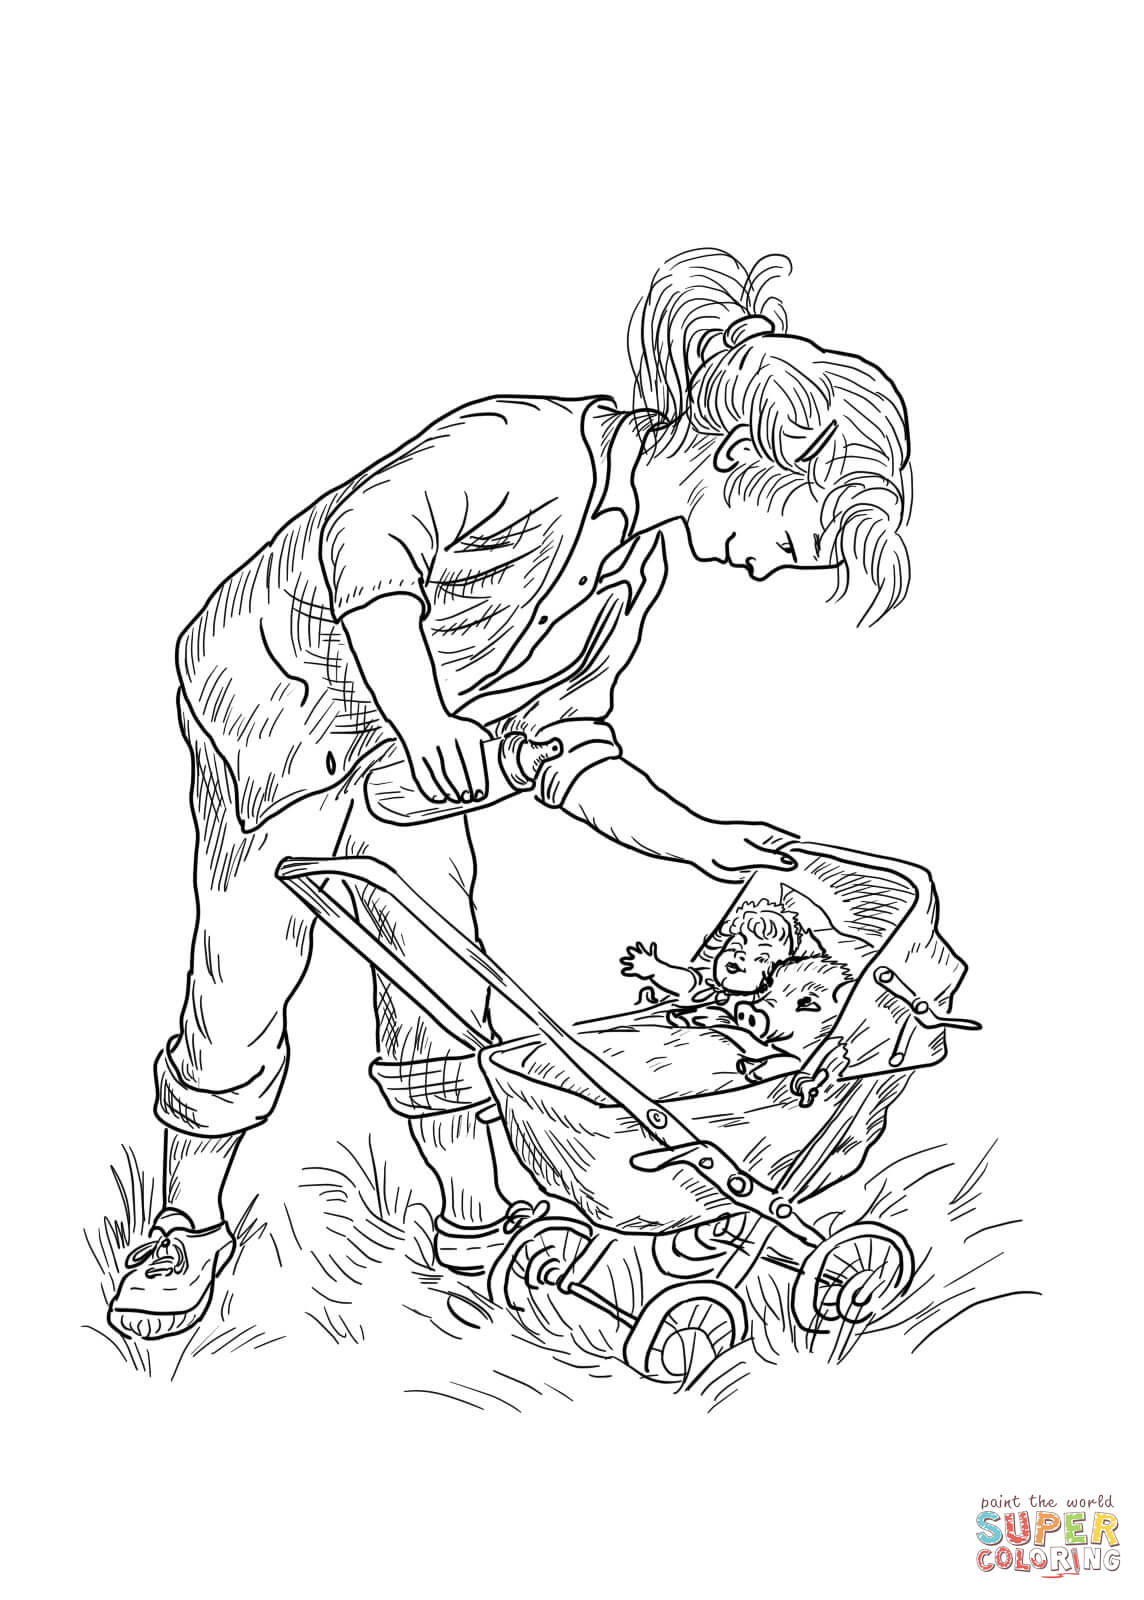 Fern Charlottes Web Coloring Pages Coloring Pages